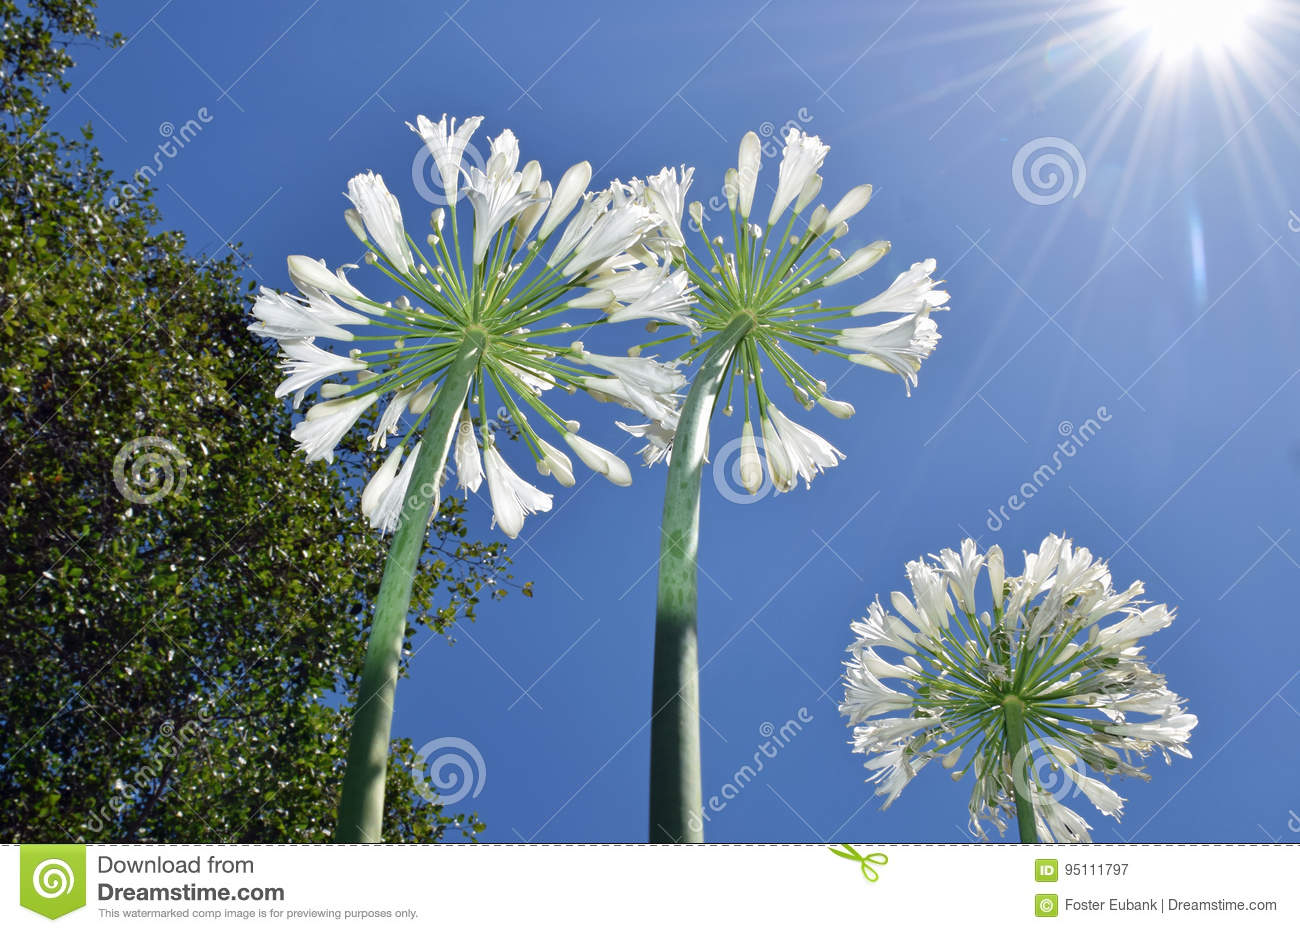 Lily of the nile agapanthus flowers growing toward the sky stock image shows several white lily of the nile or agapanthus flowers growing toward the sunlight izmirmasajfo